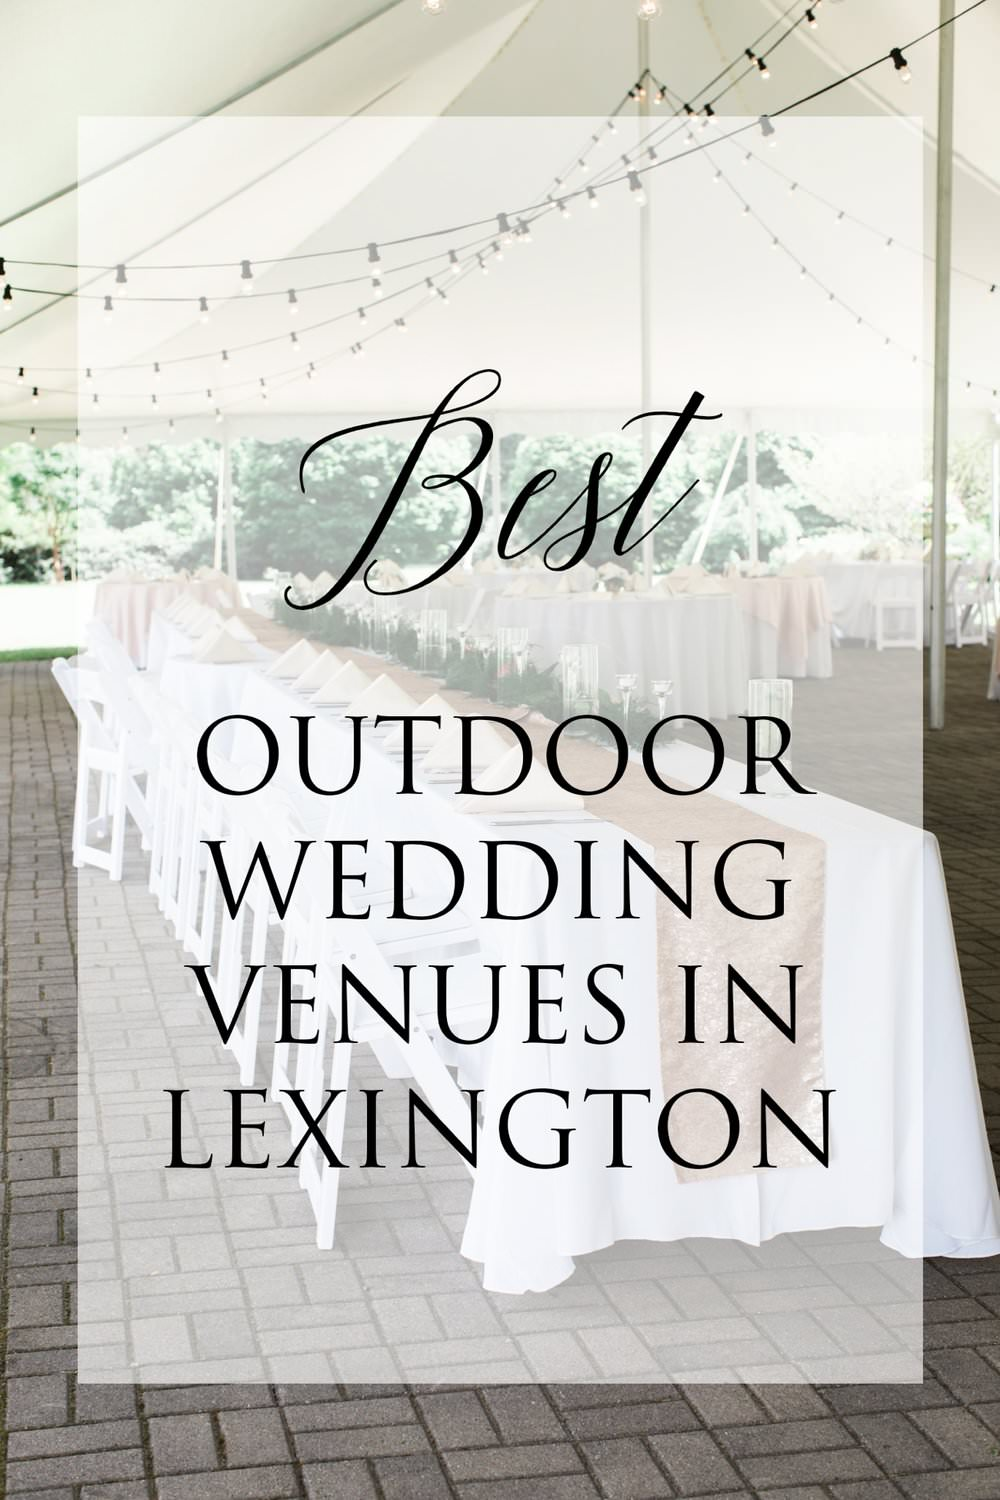 Lexington Wedding Venues Outdoors - Whether you're shopping for a venue or you've just started the planning process, be sure to take a look at some of our favorite outdoor wedding venues in Lexington Ky that are sure to give you the pre-wedding butterflies...read more